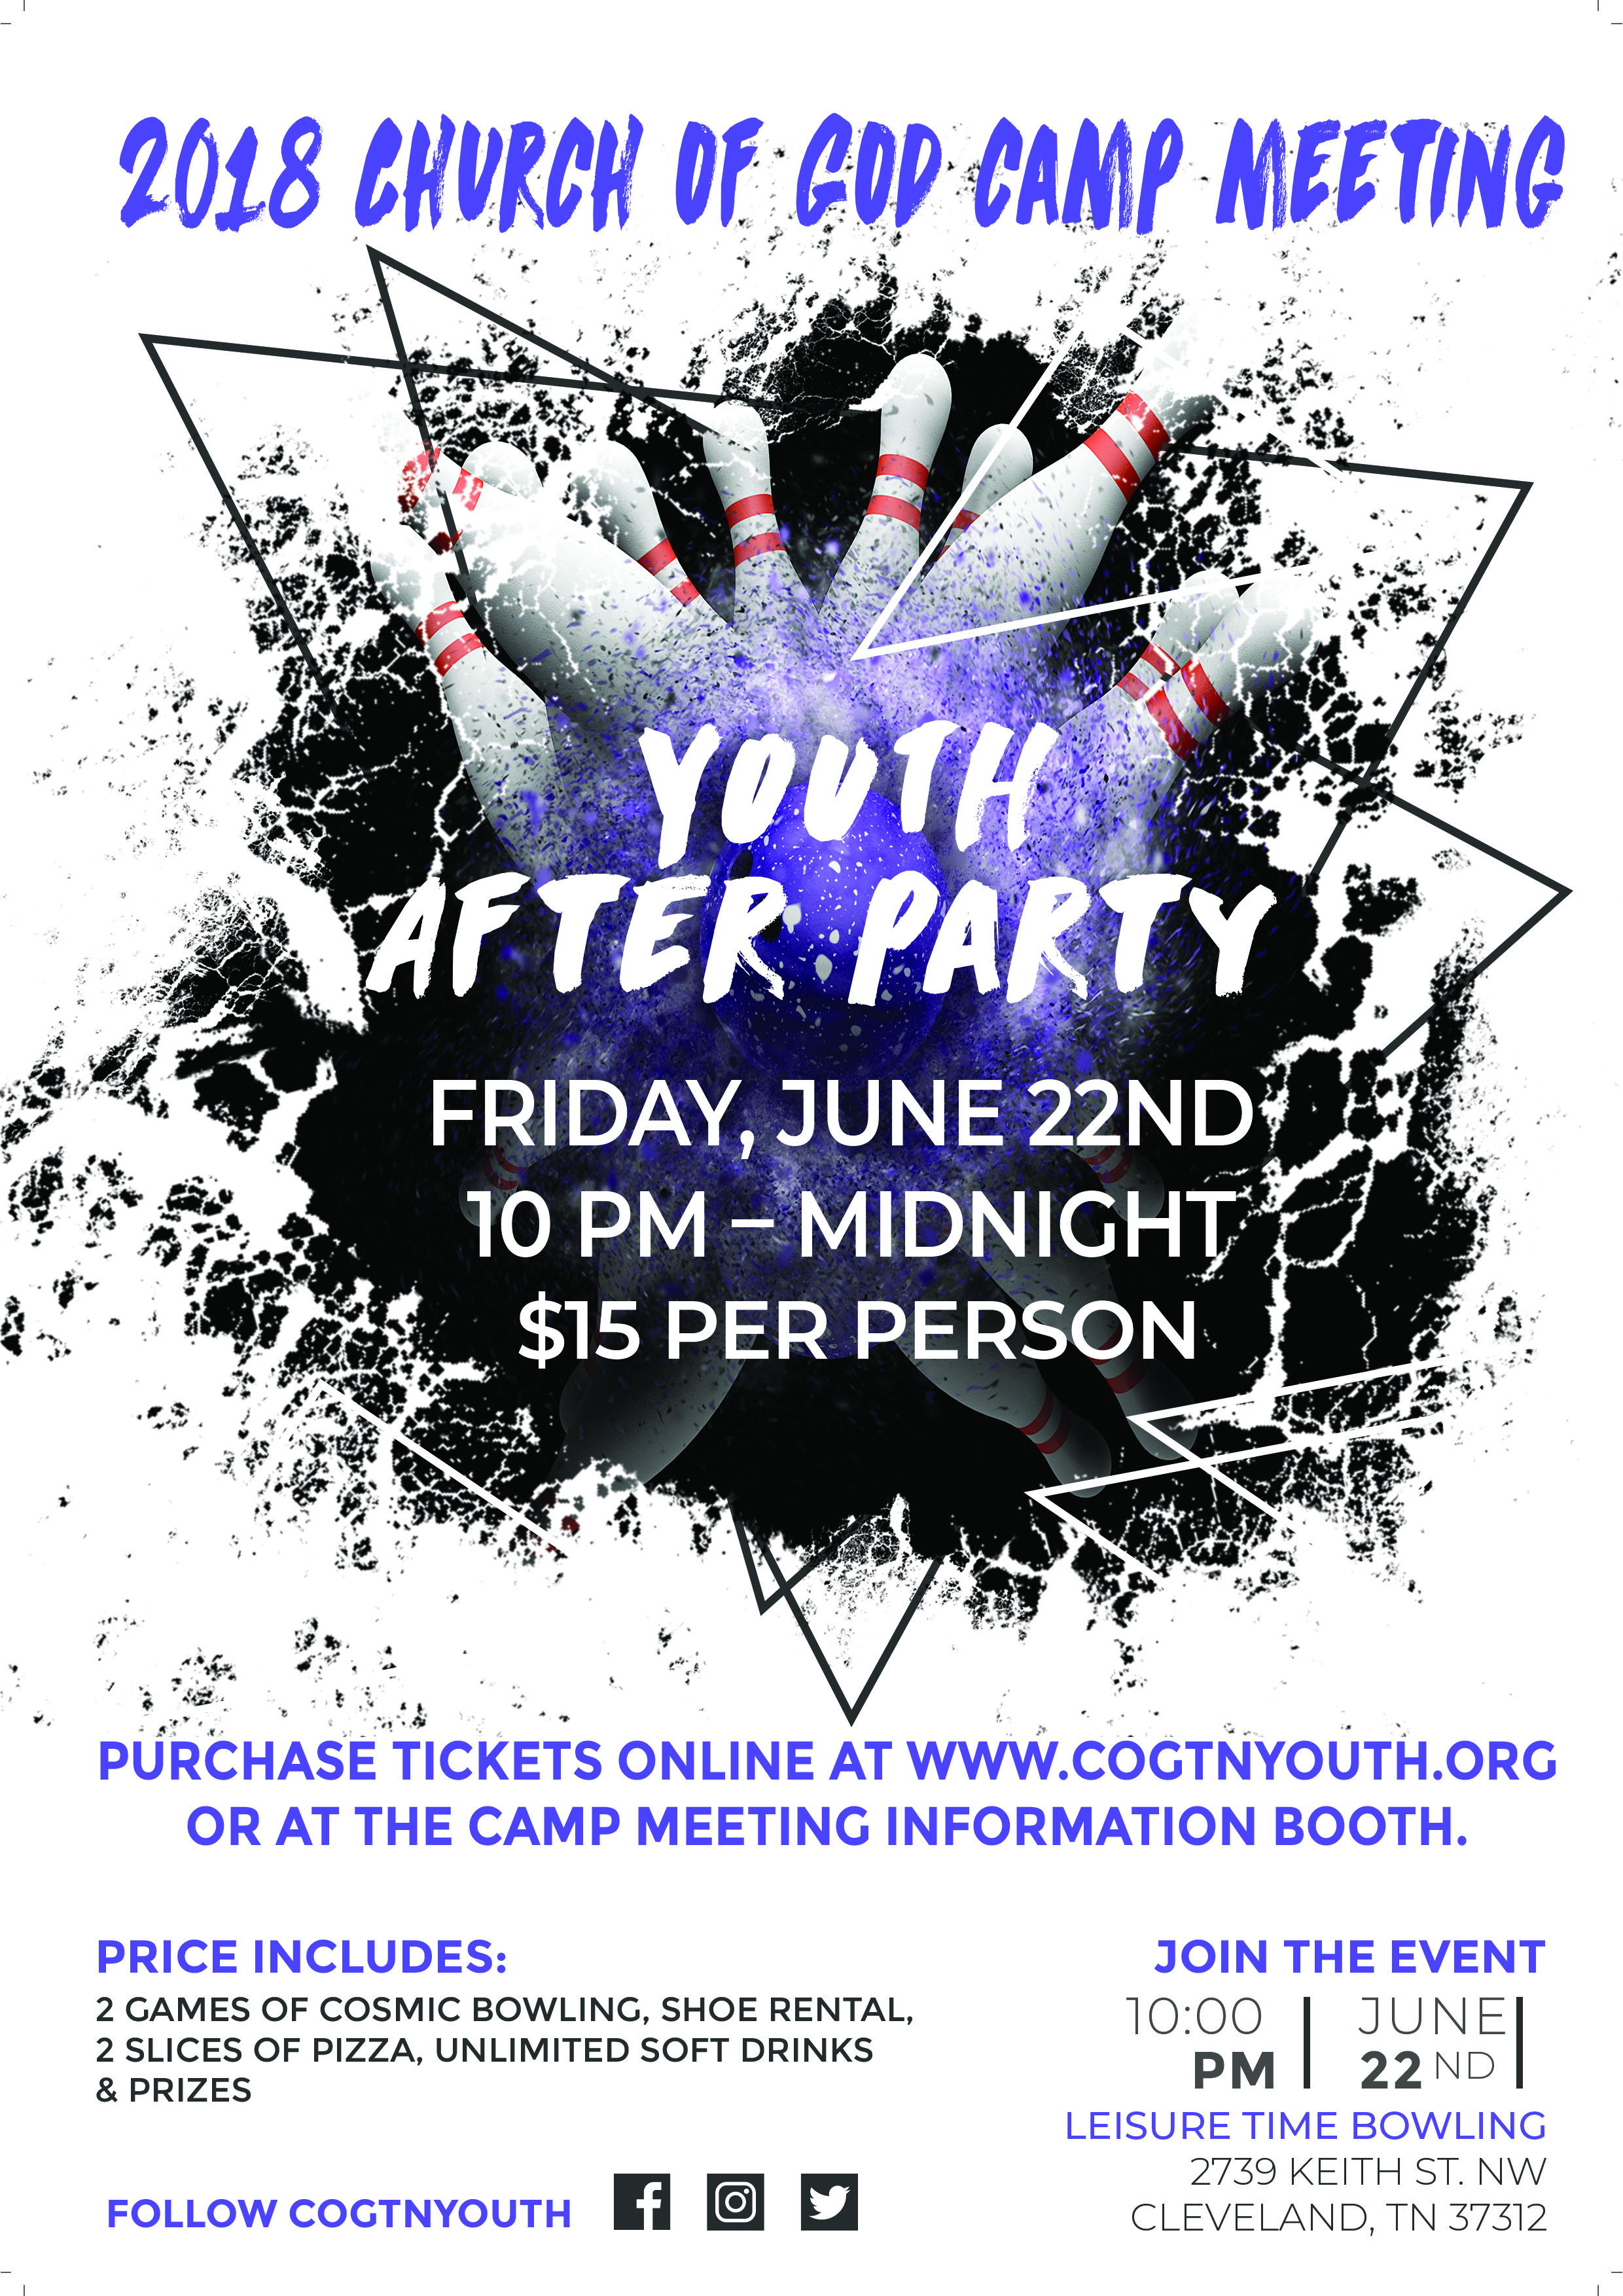 Youth After Party Tennessee Church Of God Youth And Discipleship